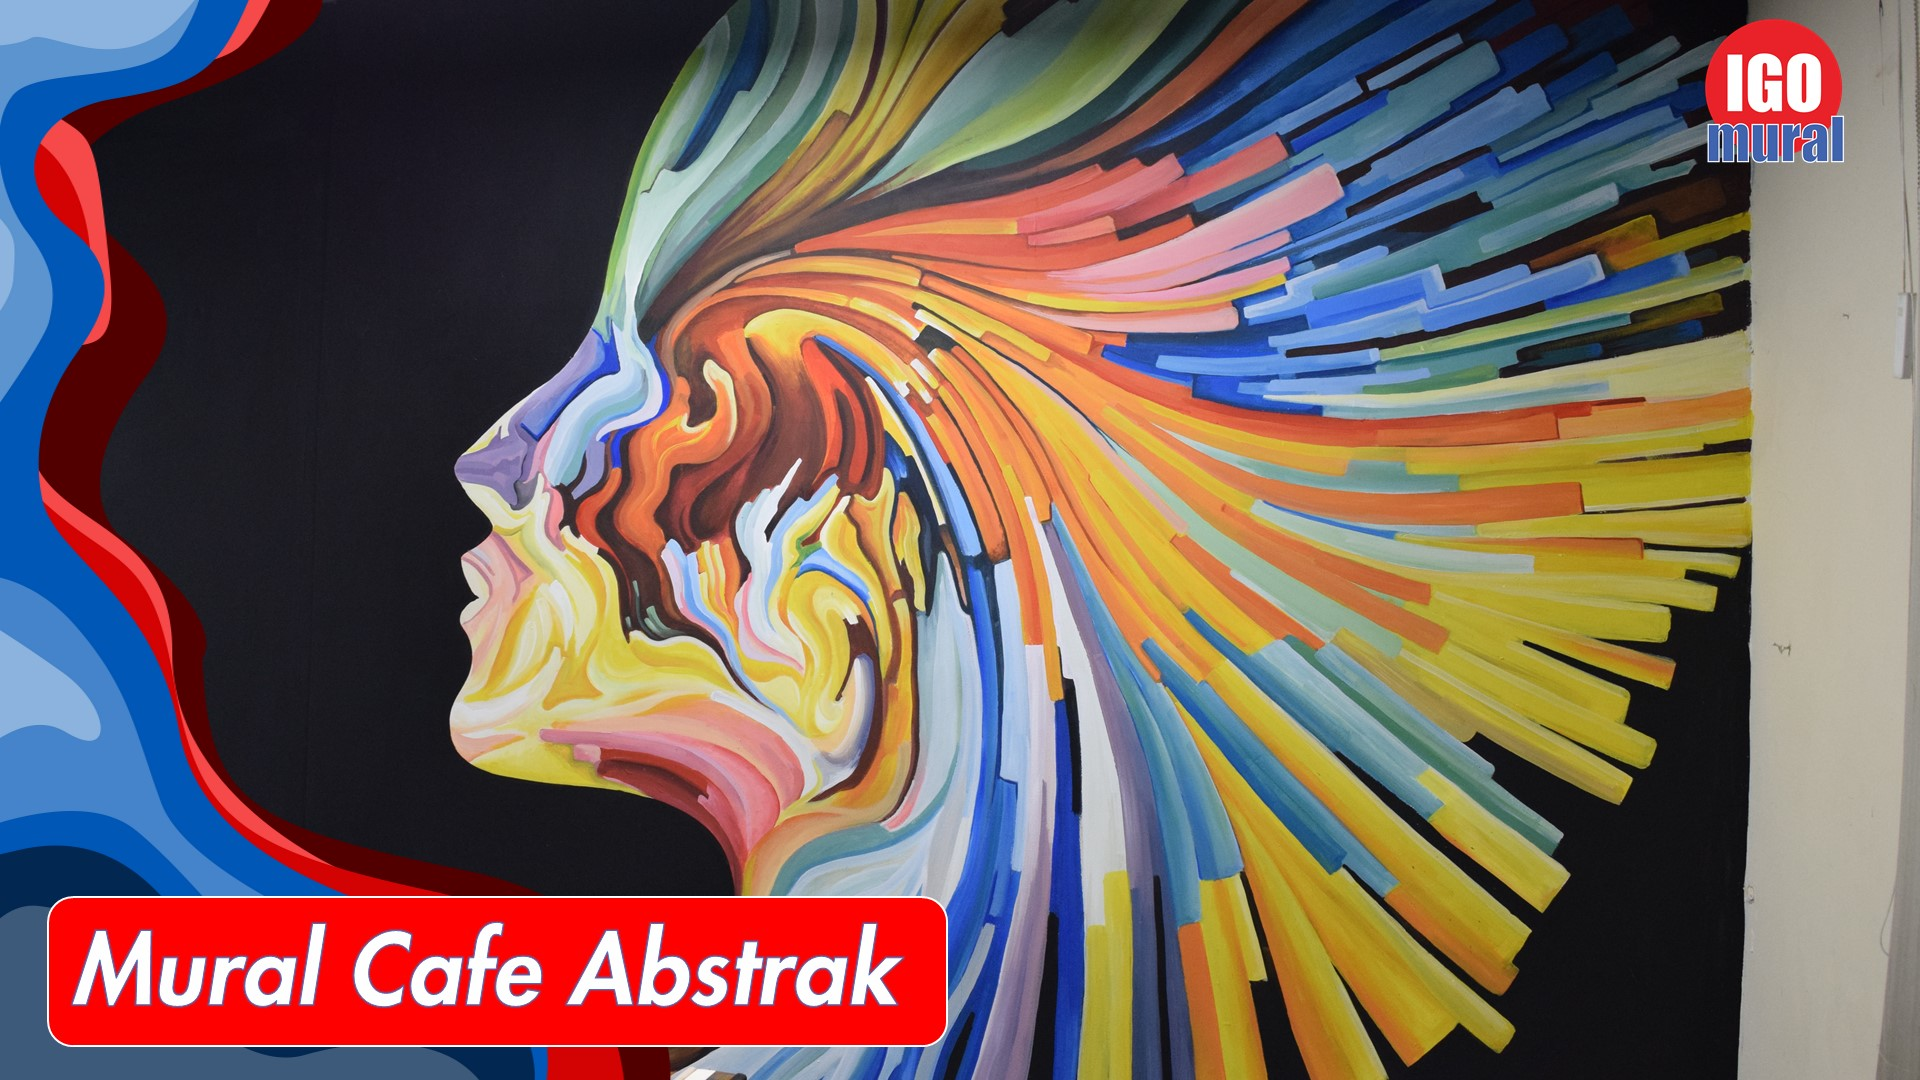 Mural Cafe Abstrak